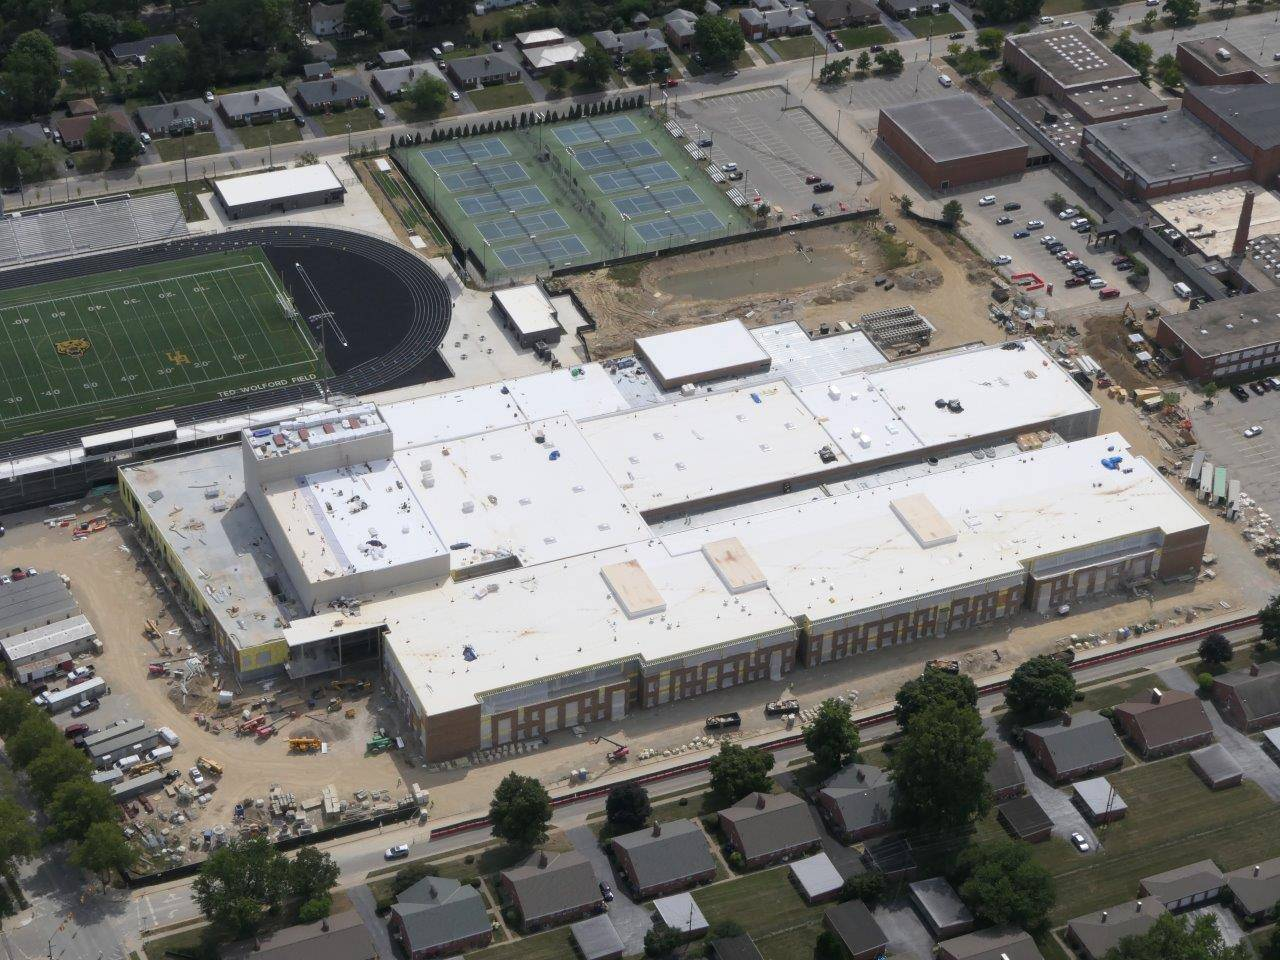 An aerial view of the new high school